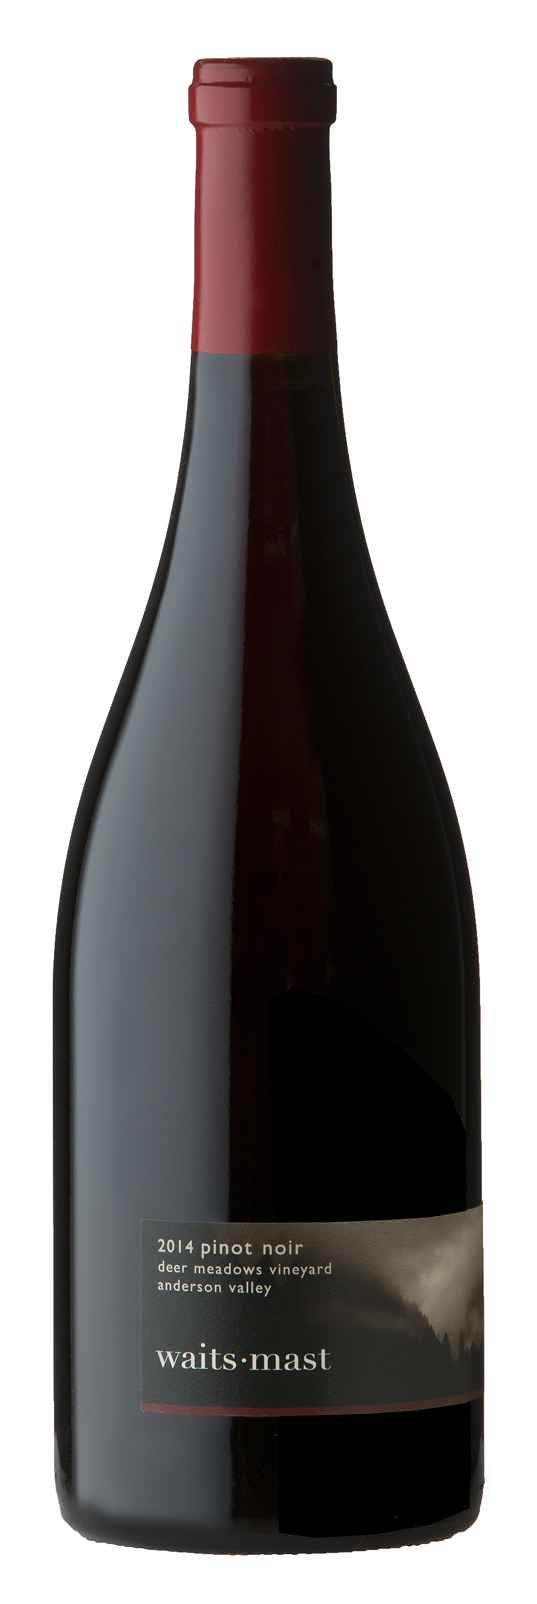 2014 Waits-Mast Pinot Noir, Deer Meadows Vineyard, Anderson Valley MAIN